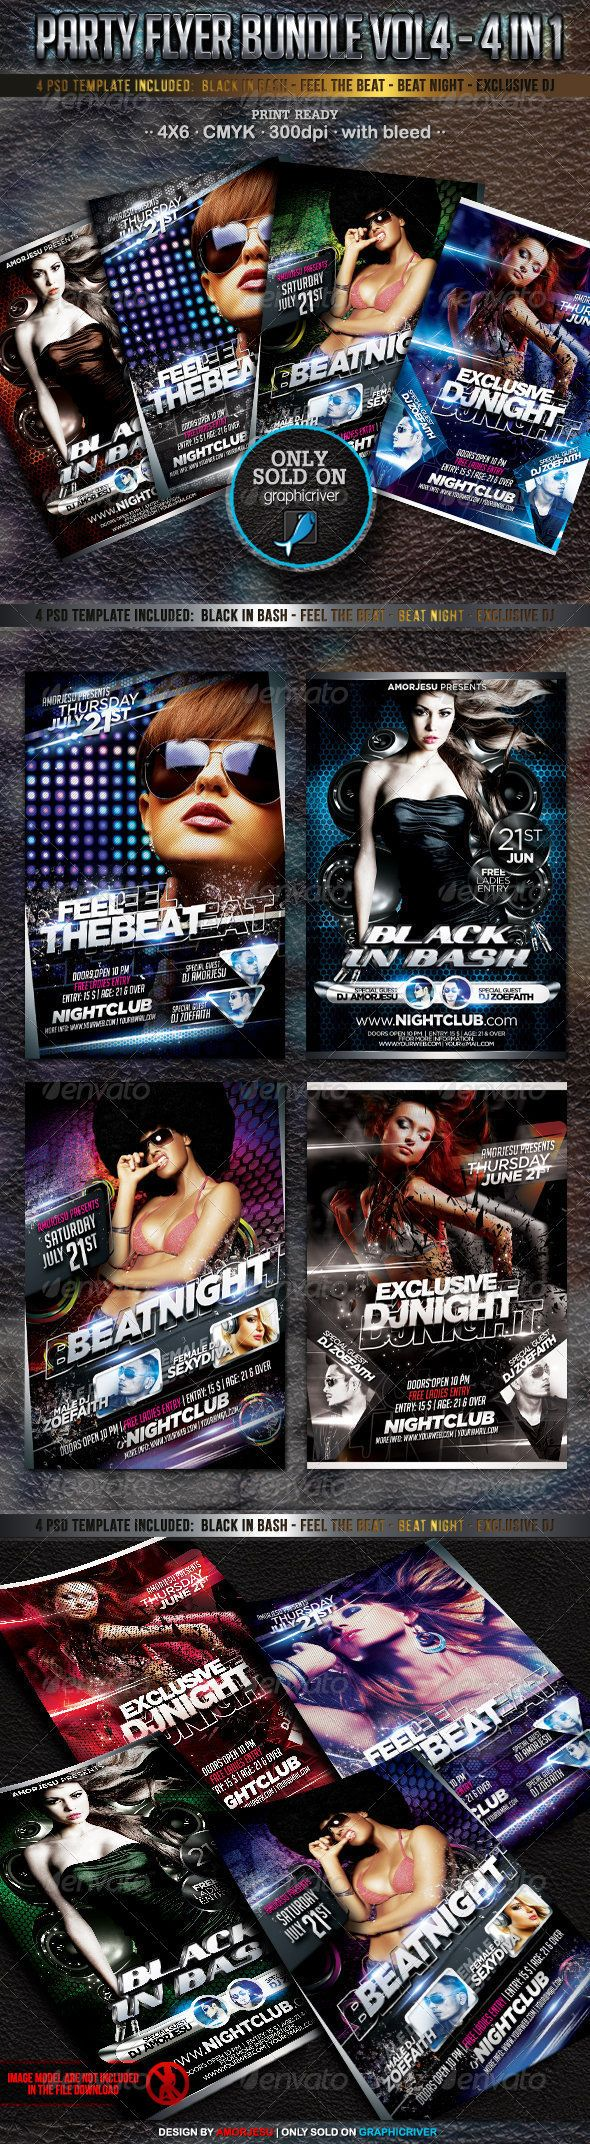 Party Flyer Bundle Vol4  4 in 1 — Photoshop PSD #night #passion • Available here → https://graphicriver.net/item/party-flyer-bundle-vol4-4-in-1/2880275?ref=pxcr